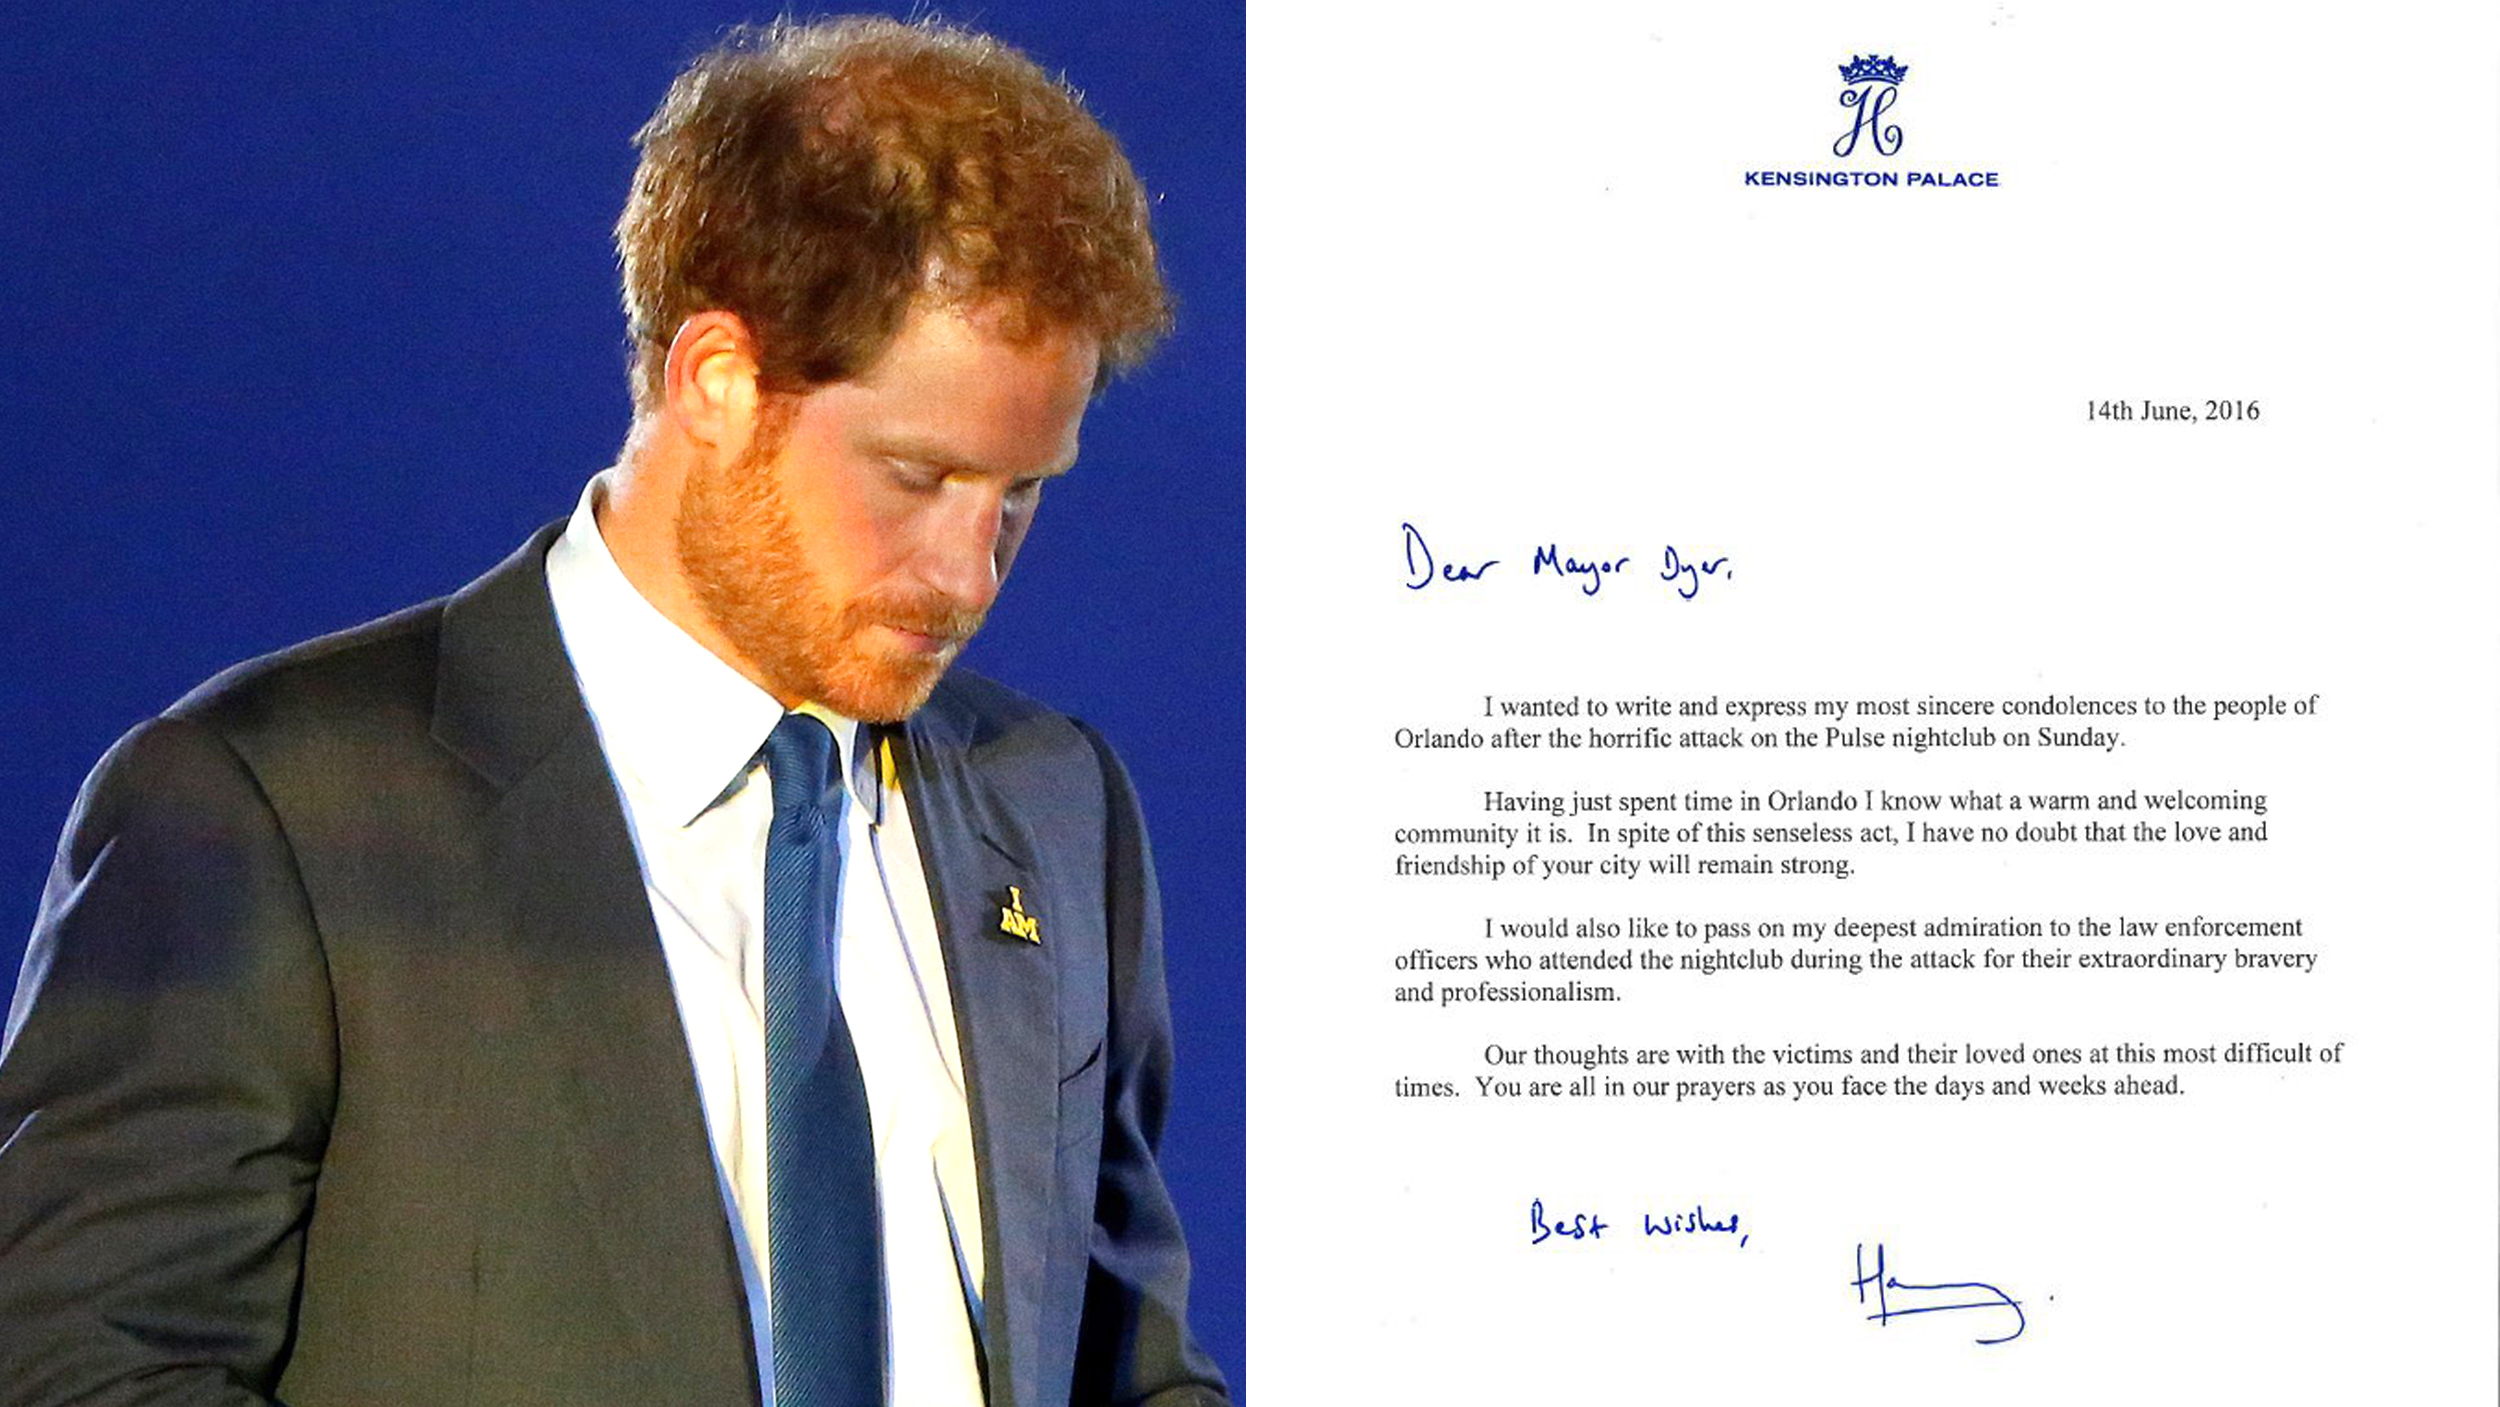 Prince Harry Writes Letter Of Sympathy To The People Of Orlando